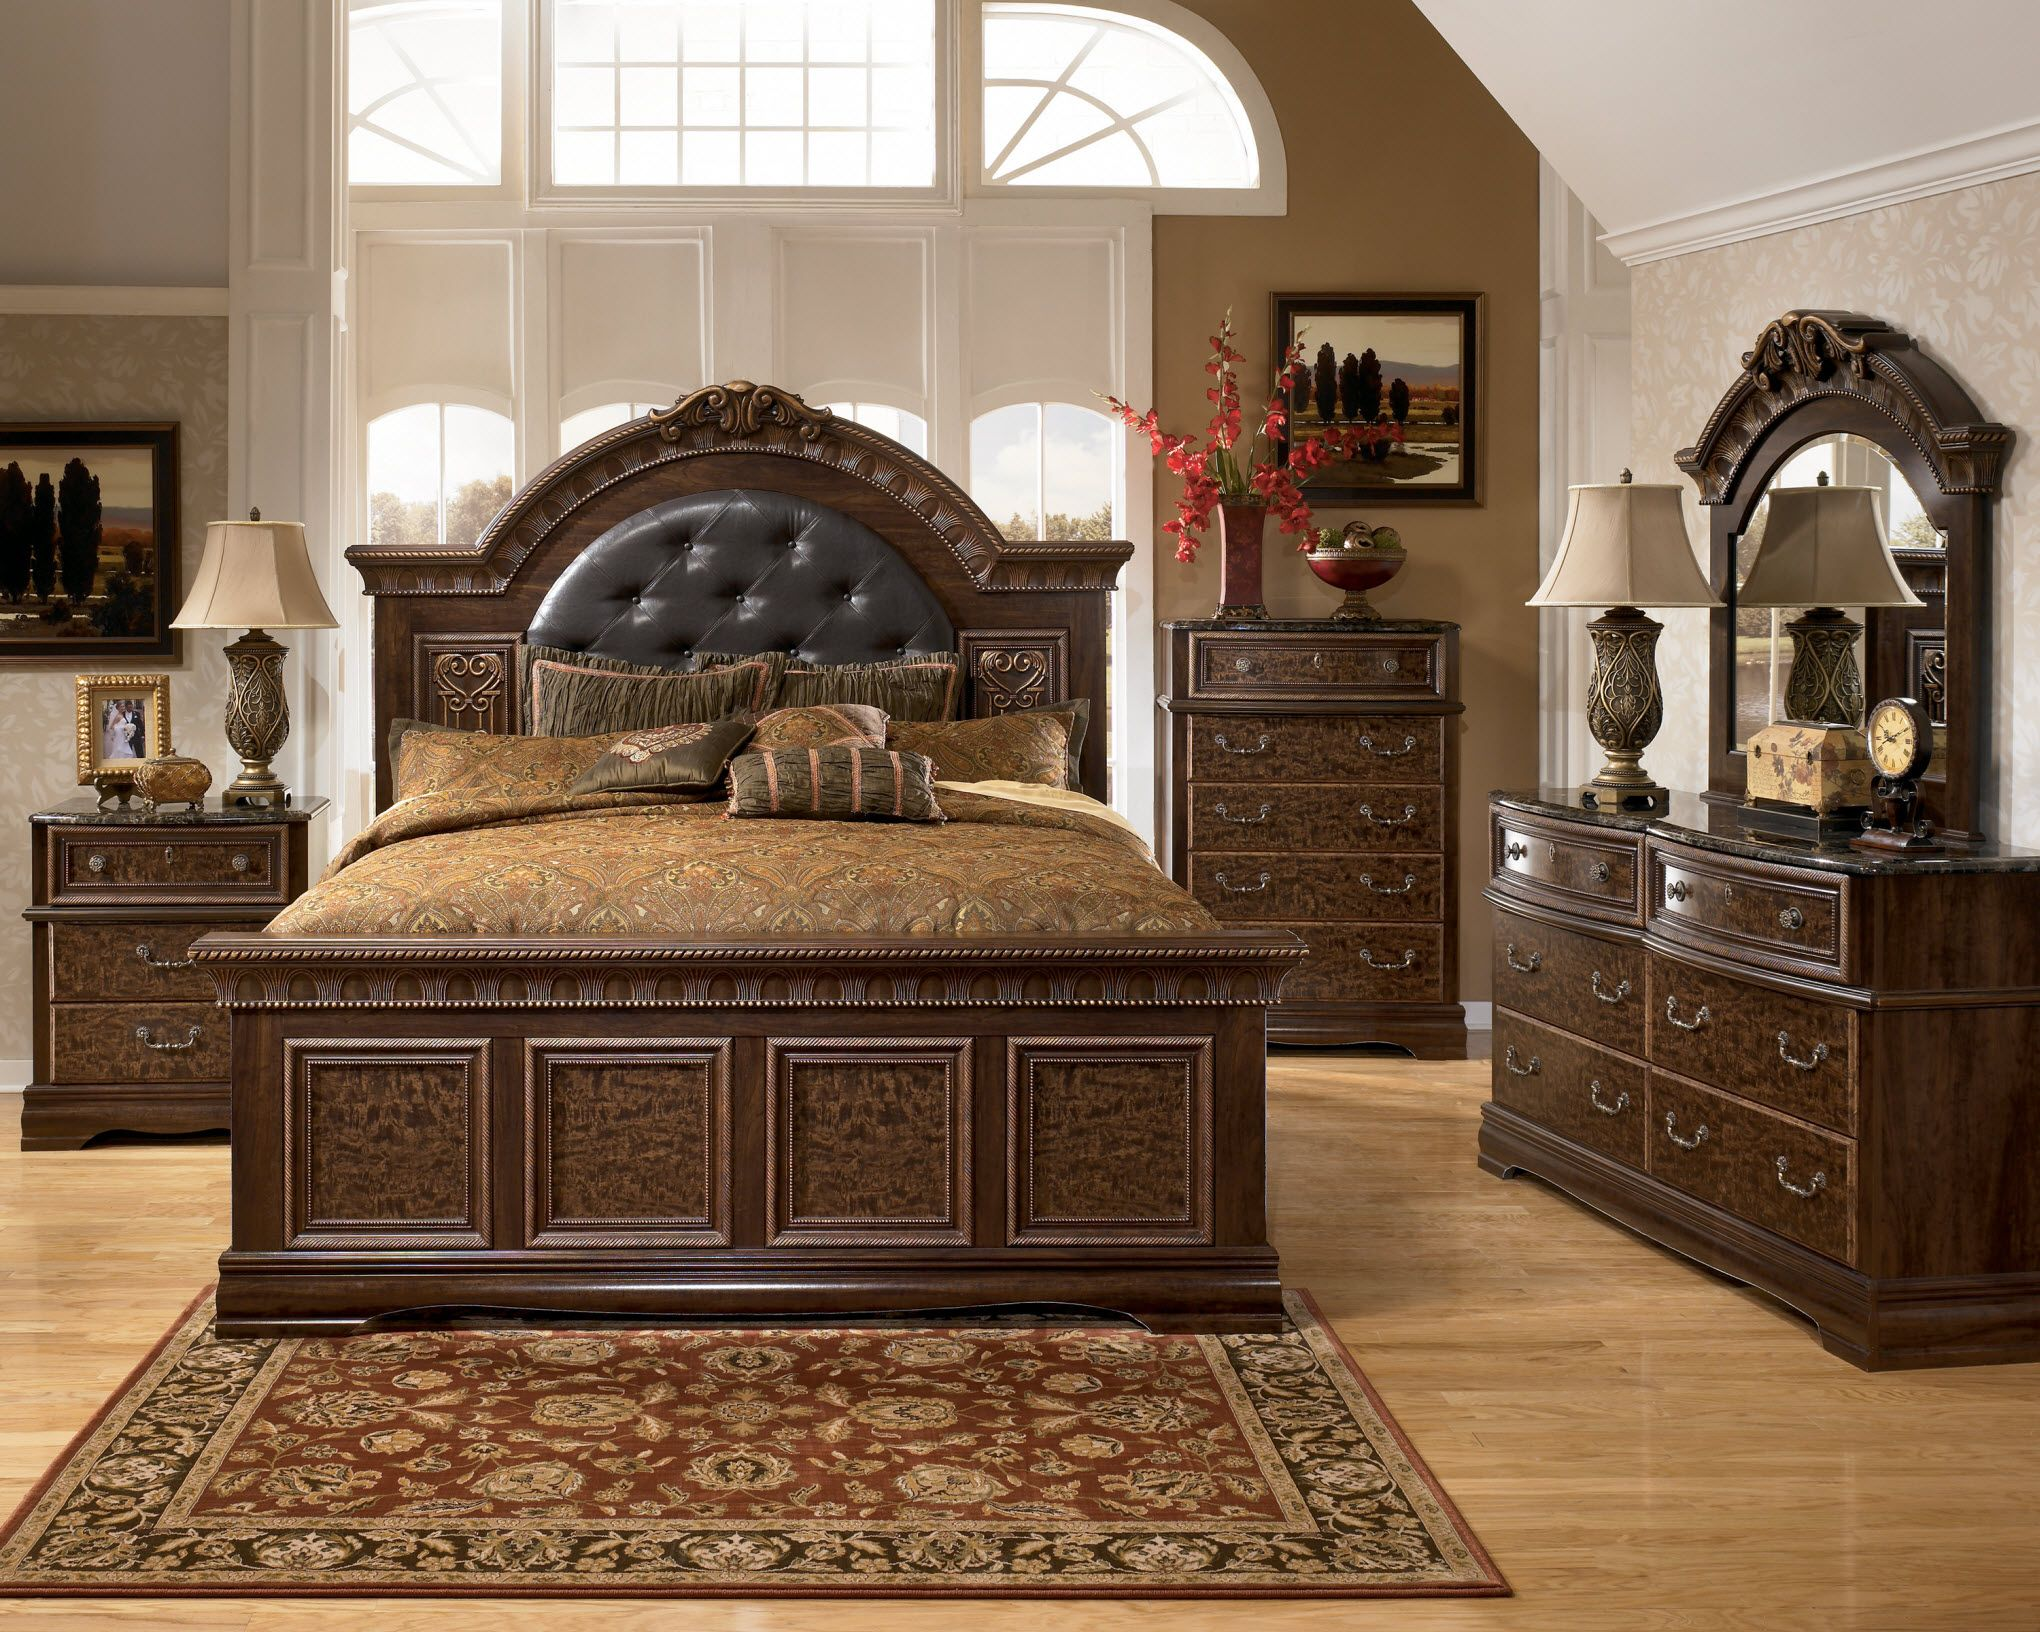 Bedroom Furniture Designer 30 Best Bedroom Furniture Images On Pinterest  Bedrooms Master